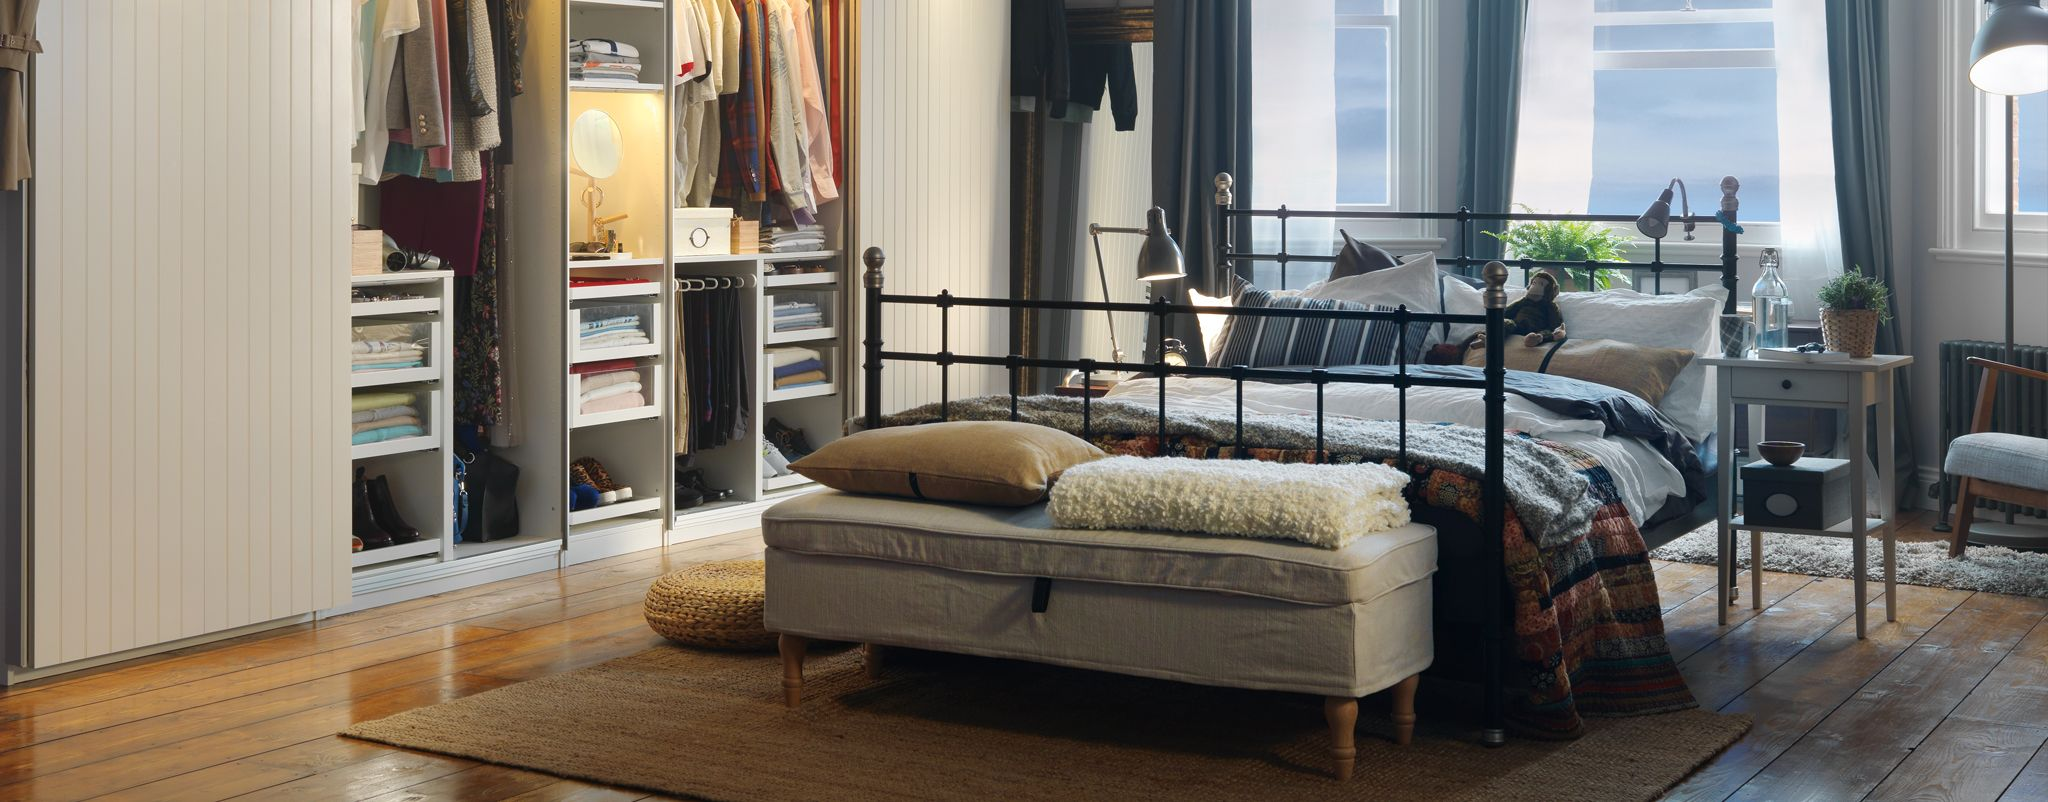 Ireland Shop for Furniture & Home Accessories Home